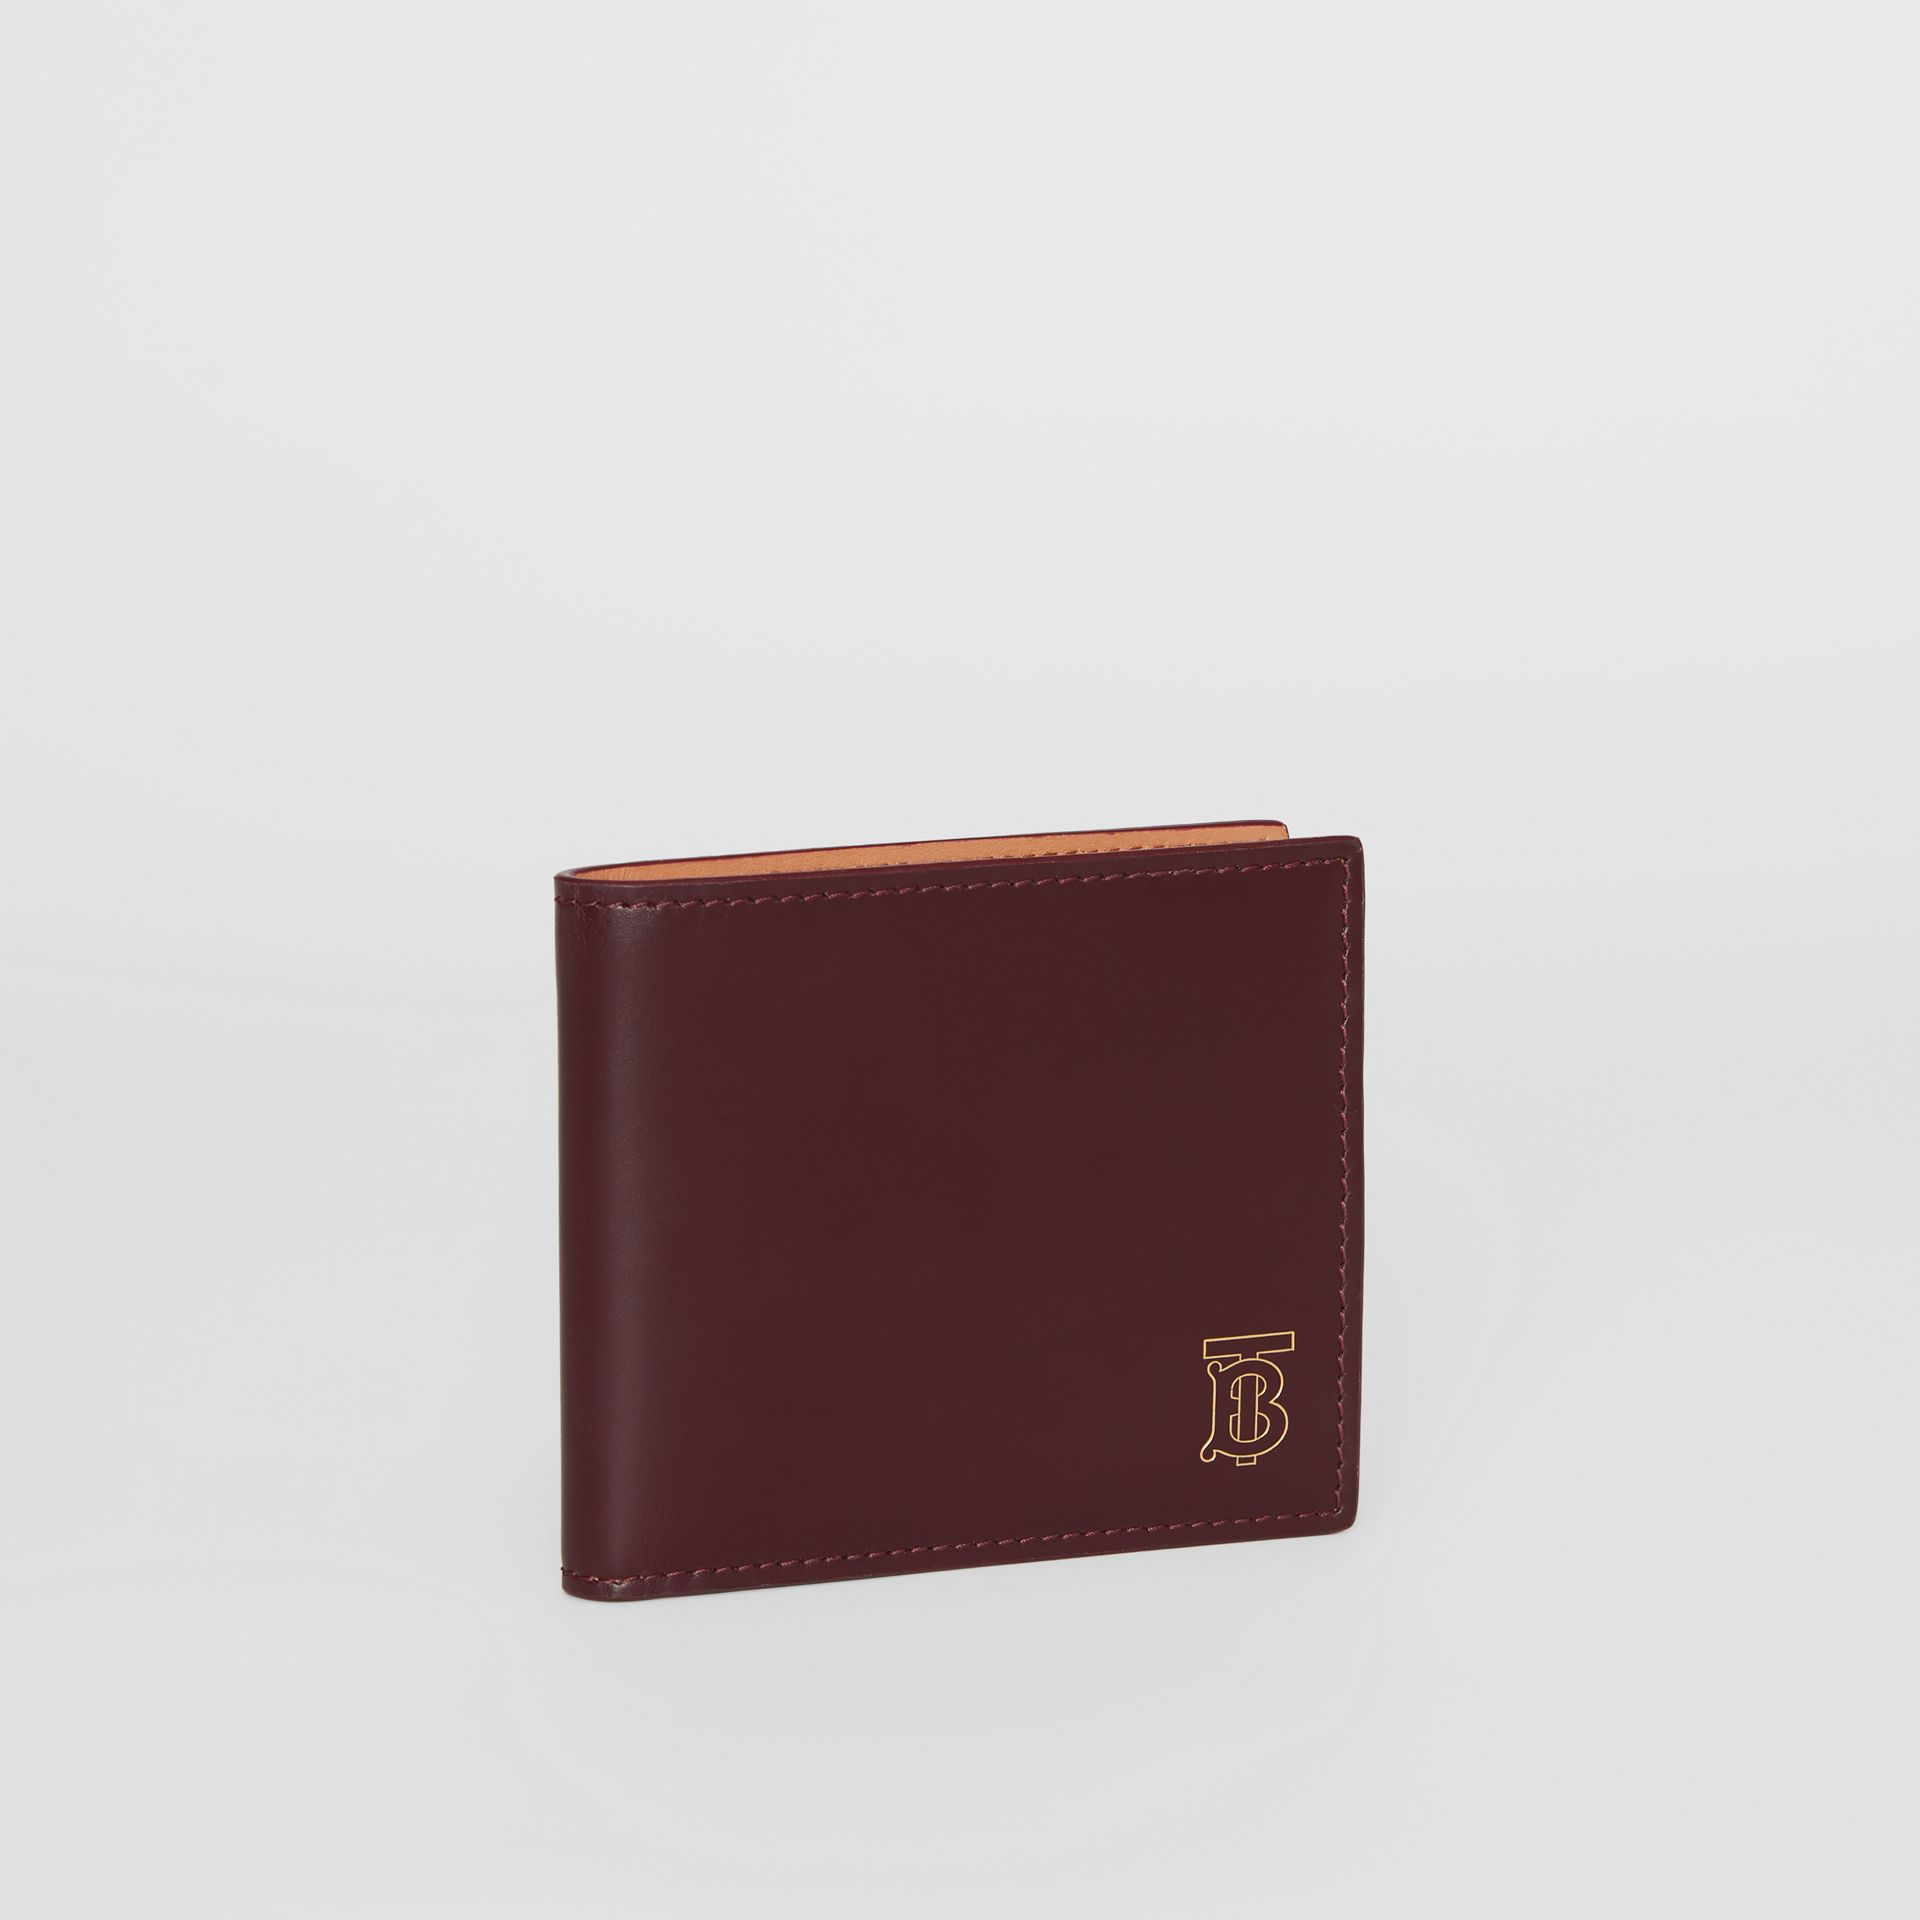 Monogram Motif Leather International Bifold Wallet in Oxblood - Men | Burberry - gallery image 3